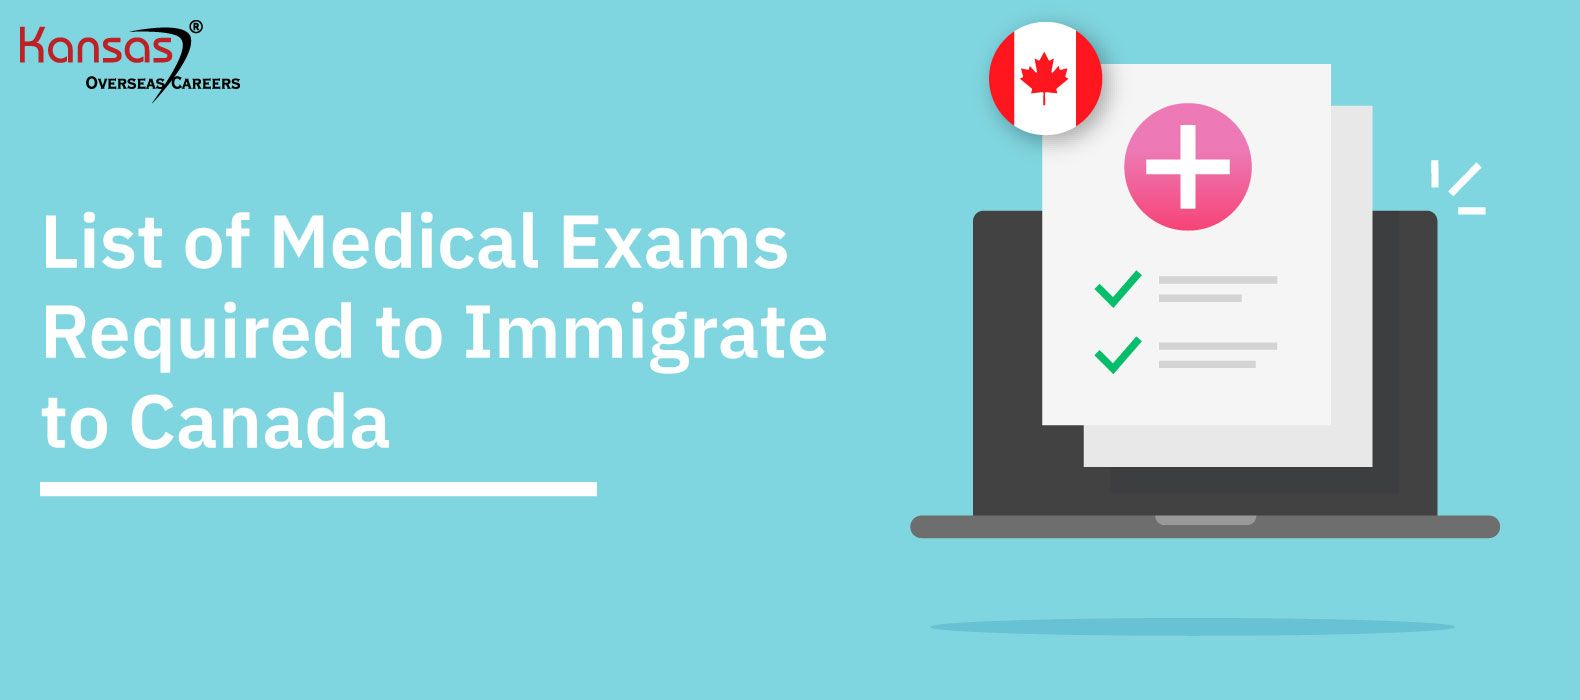 List-of-Medical-Exams-Required-to-Immigrate-to-Canada